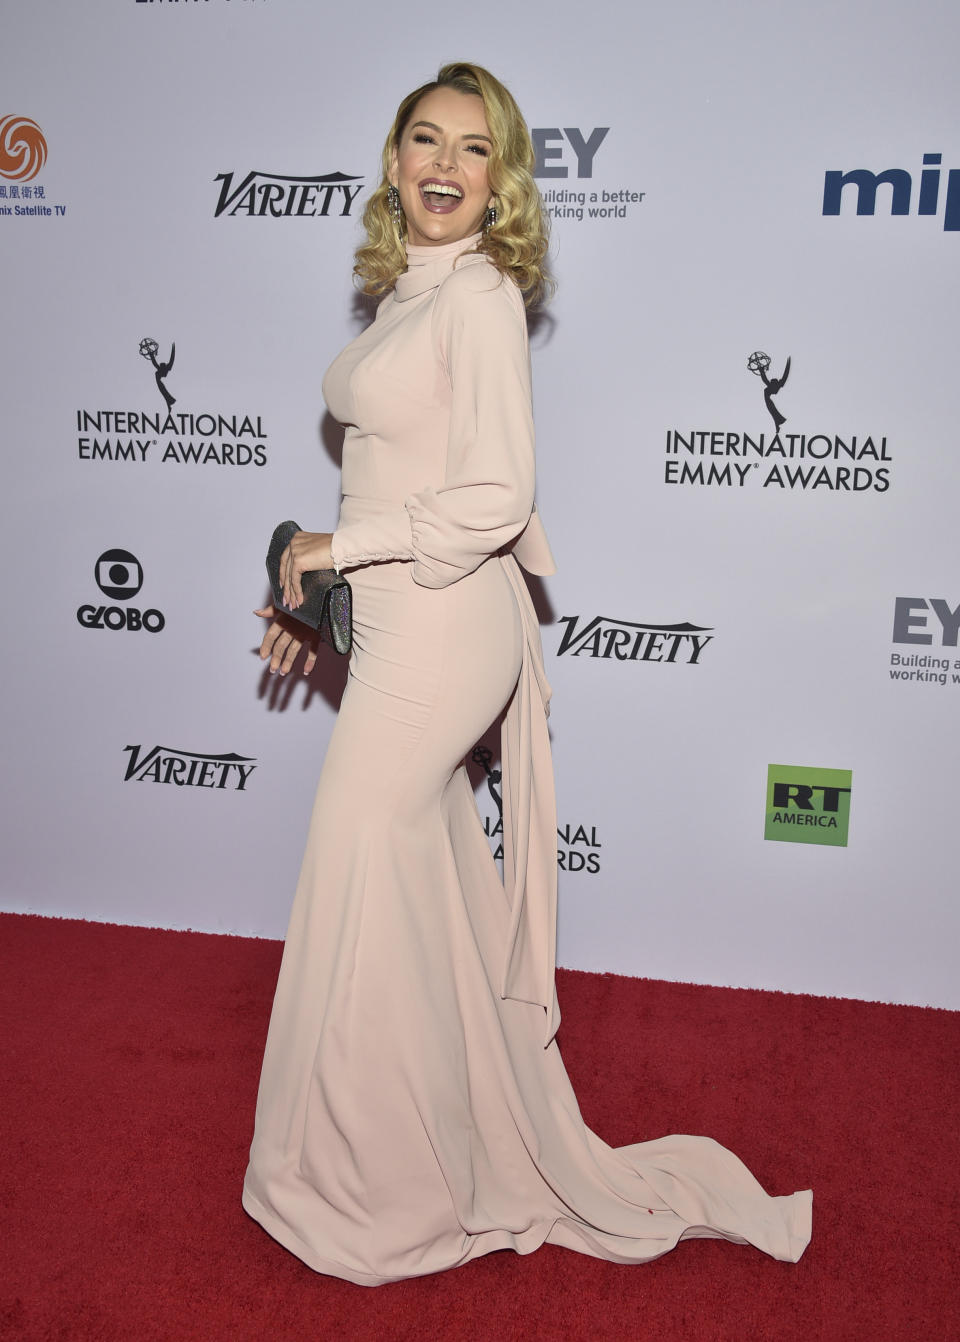 Marjorie de Sousa arrives at the 47th International Emmy Awards gala at the Hilton Hotel on Monday, Nov. 25, 2019, in New York. (Photo by Evan Agostini/Invision/AP)